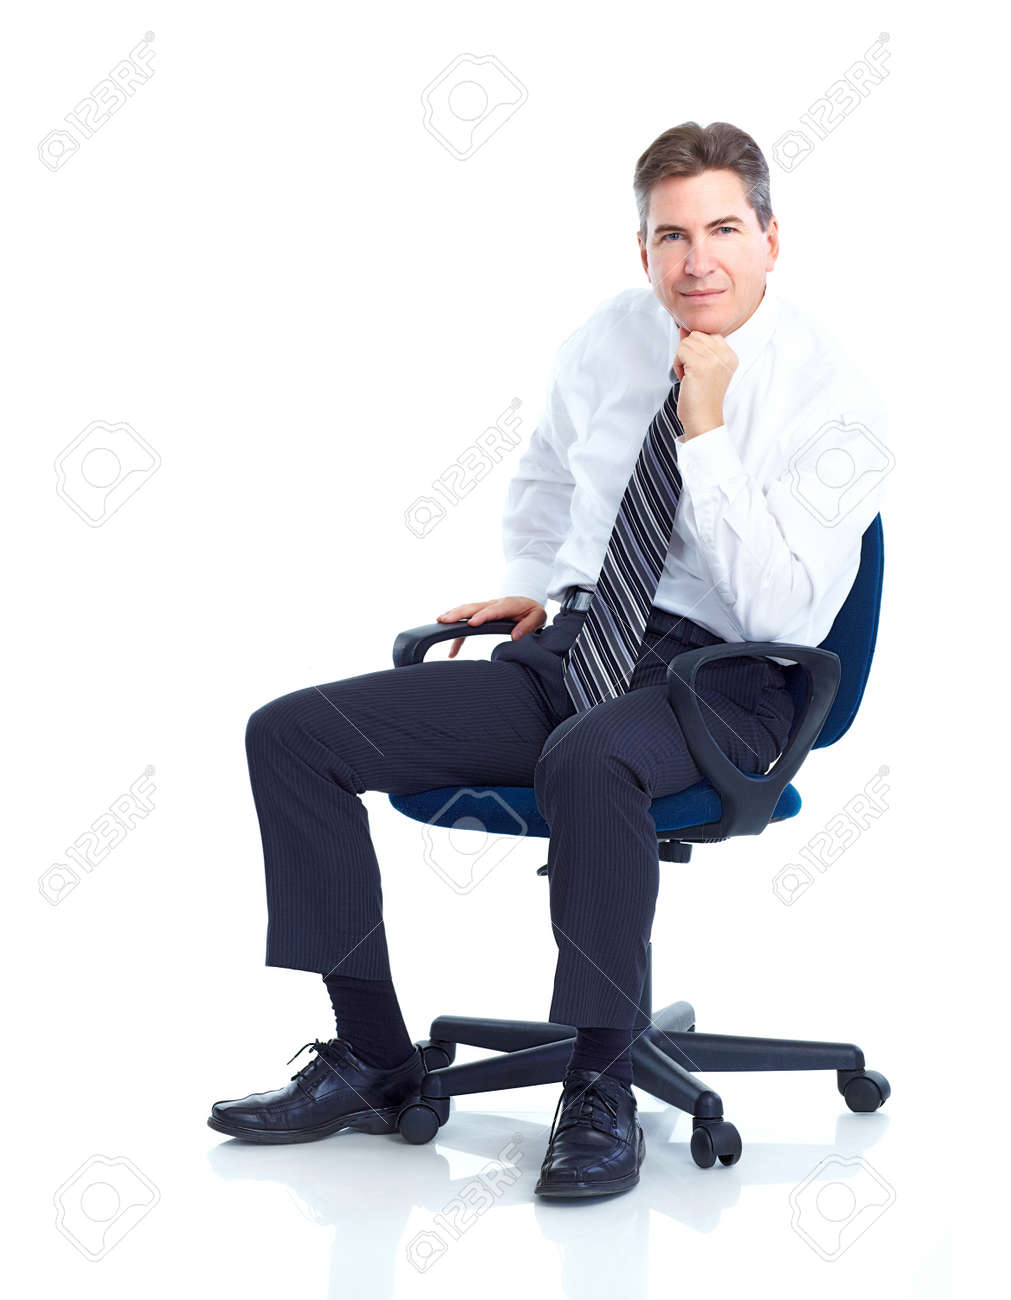 Business man.  Isolated over white background. Stock Photo - 10223865